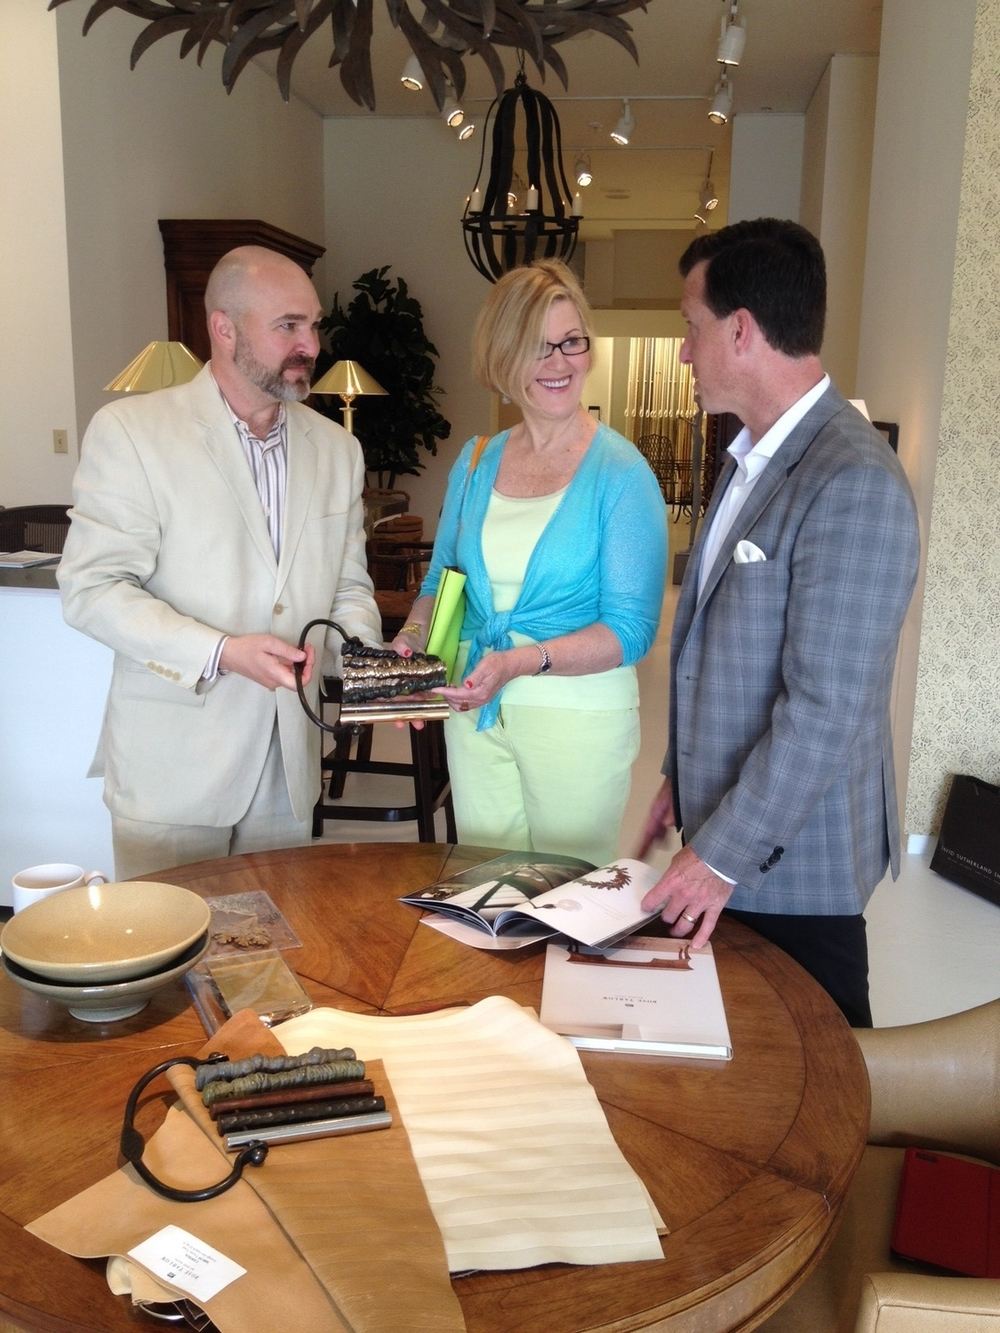 Richard Bettinger, Me, Jobst Blachy looking at the new Rose Tarlow furniture line